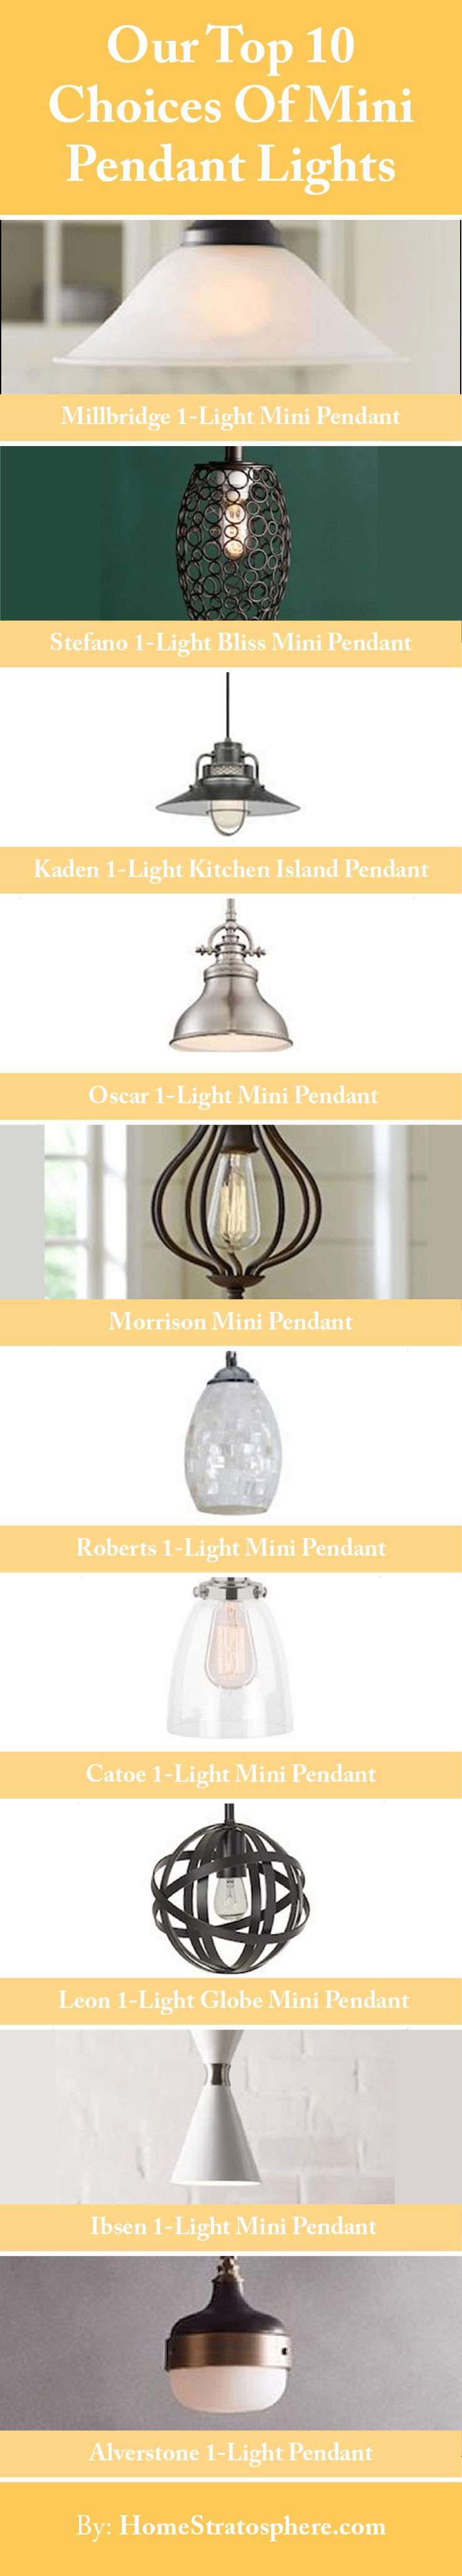 Our Top 10 Choices Of Mini Pendant Lights -